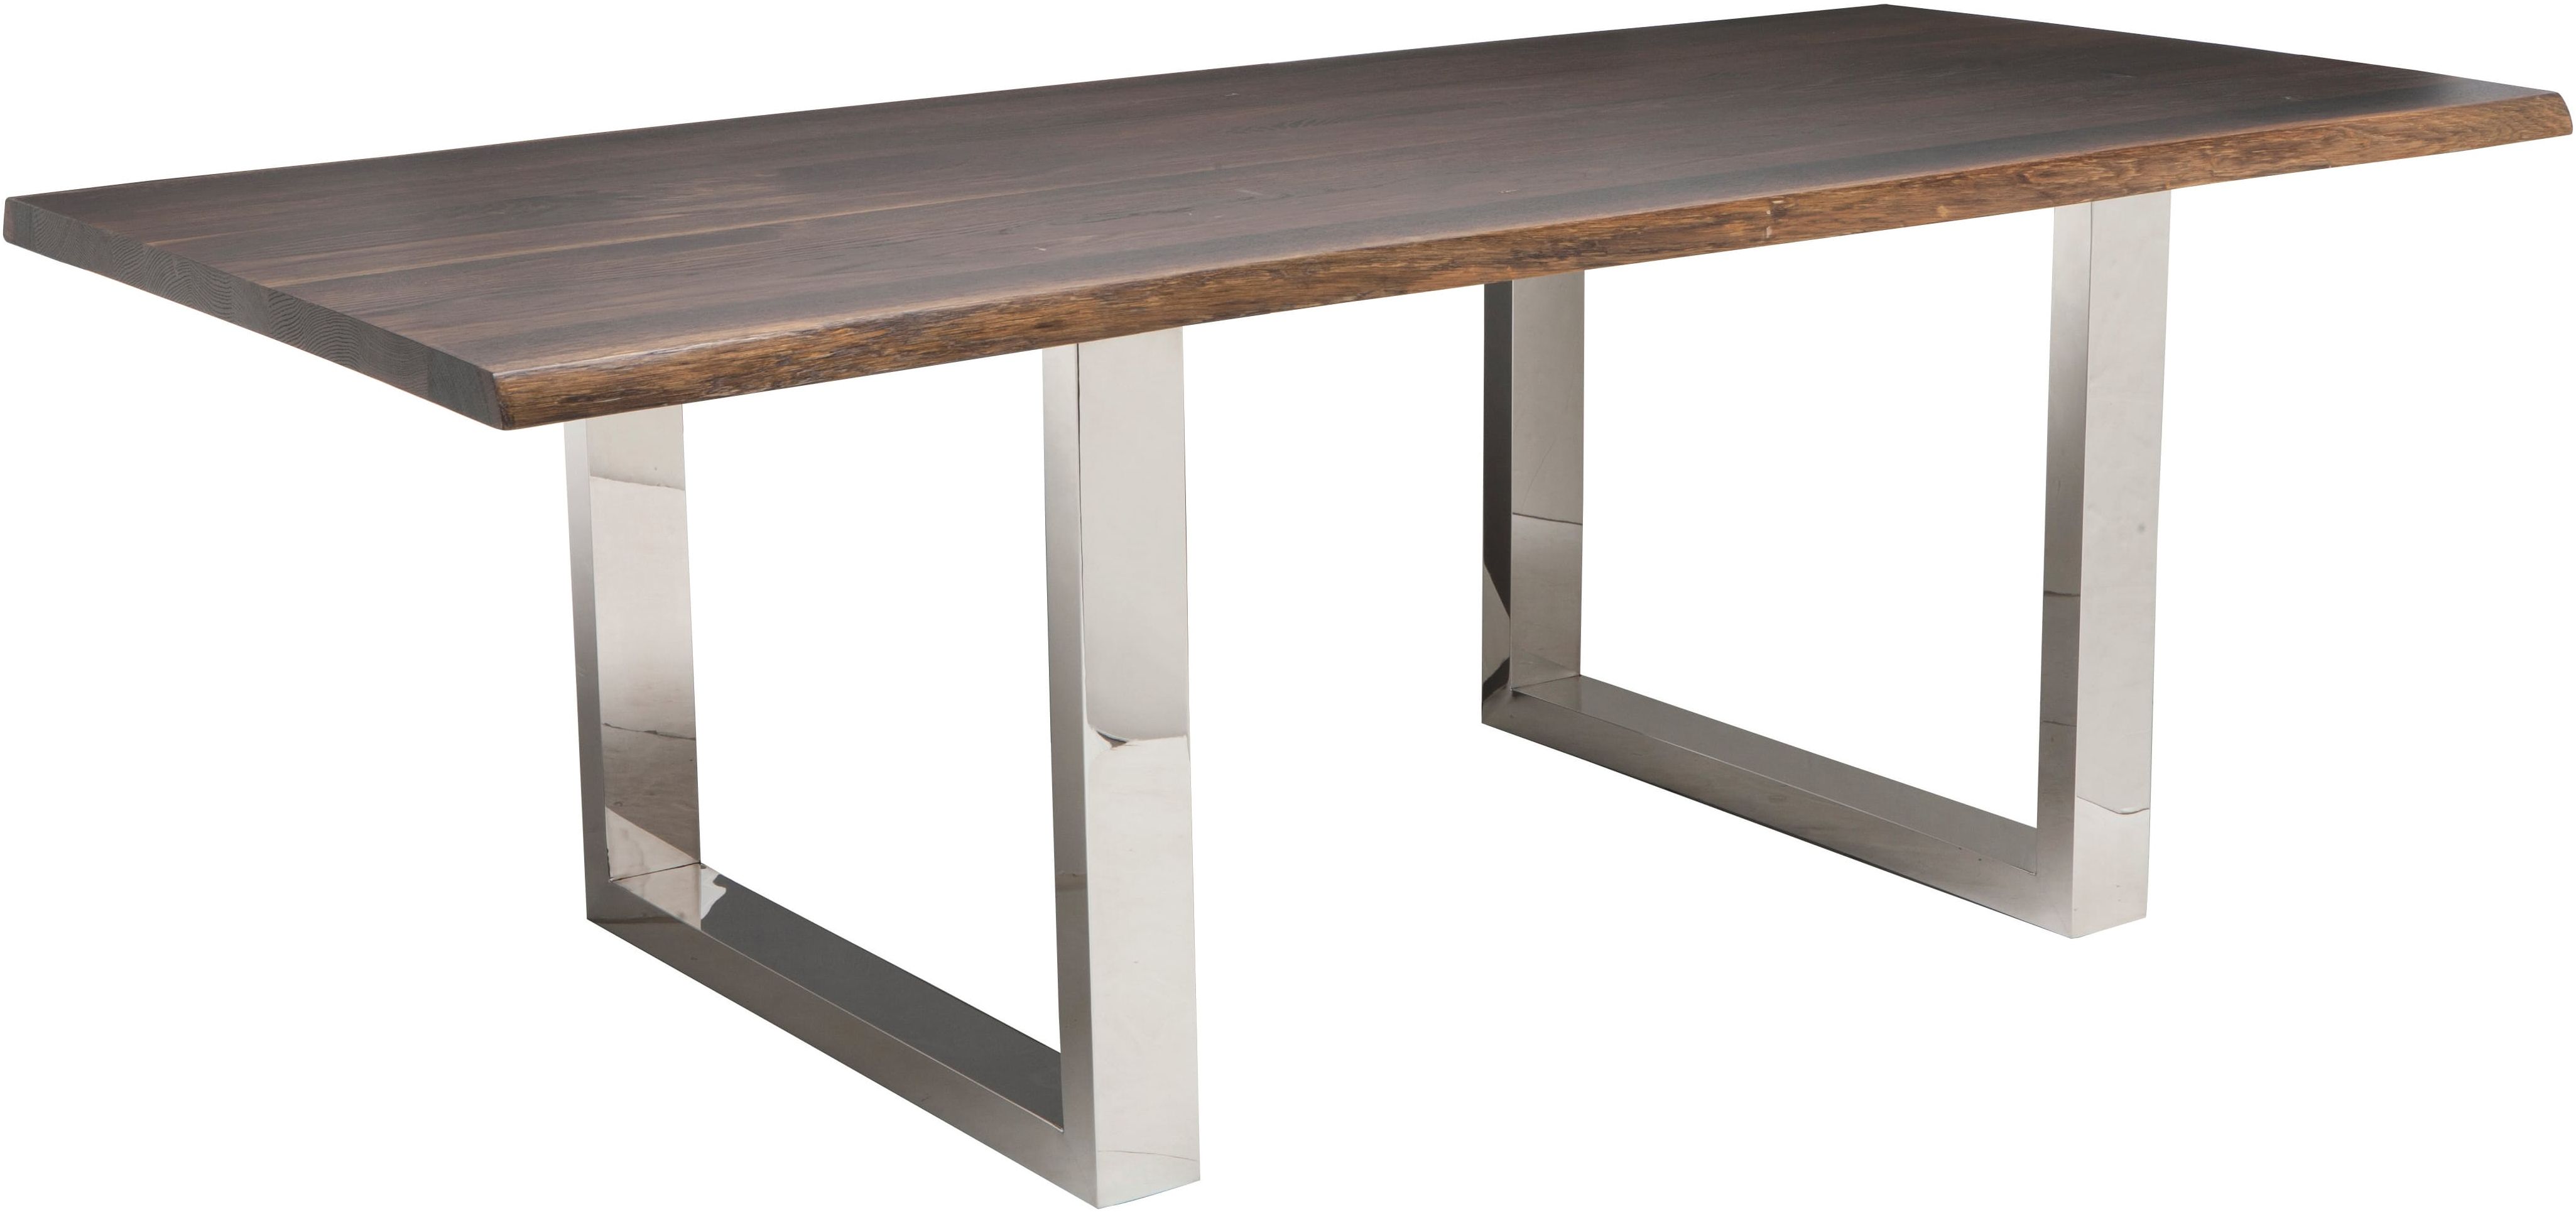 The Lyon Dining Table by Nuevo